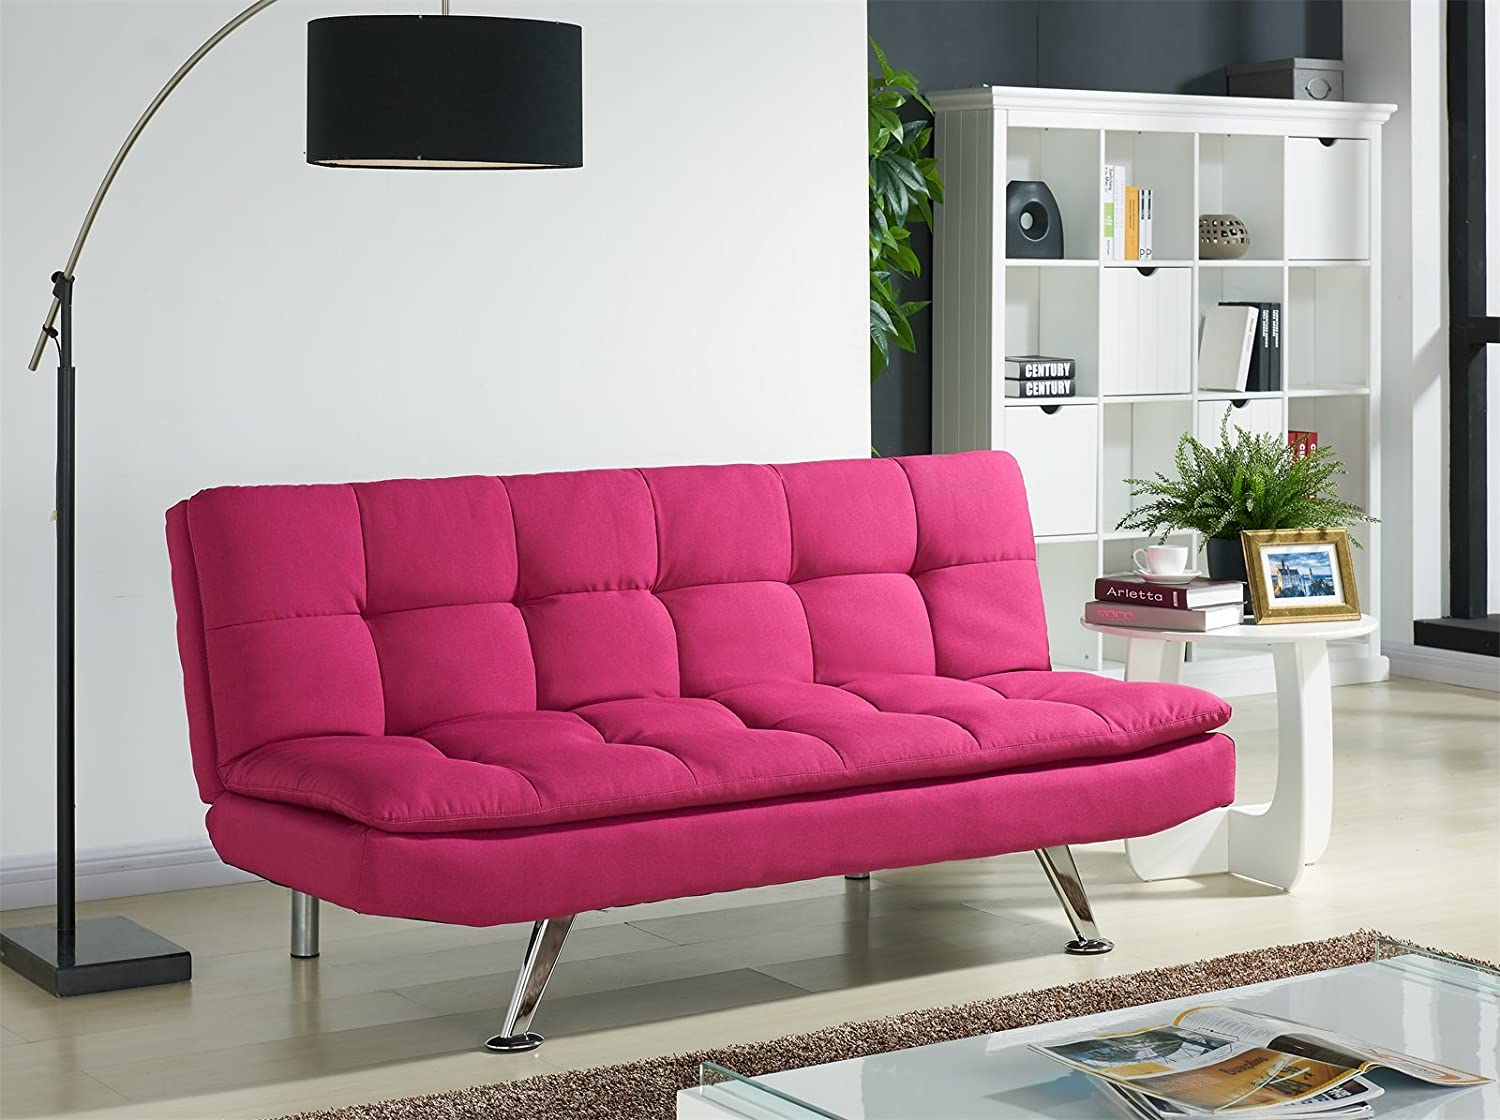 Luxurious Modern Fabric Sofa Bed OR Matching Recliner Chair with Chrome Legs, AVAILABLE in 5 Colours, Padded for Extra Comfort (Cream Single Chair, 93cm x 89cm x 84cm) Home Detail